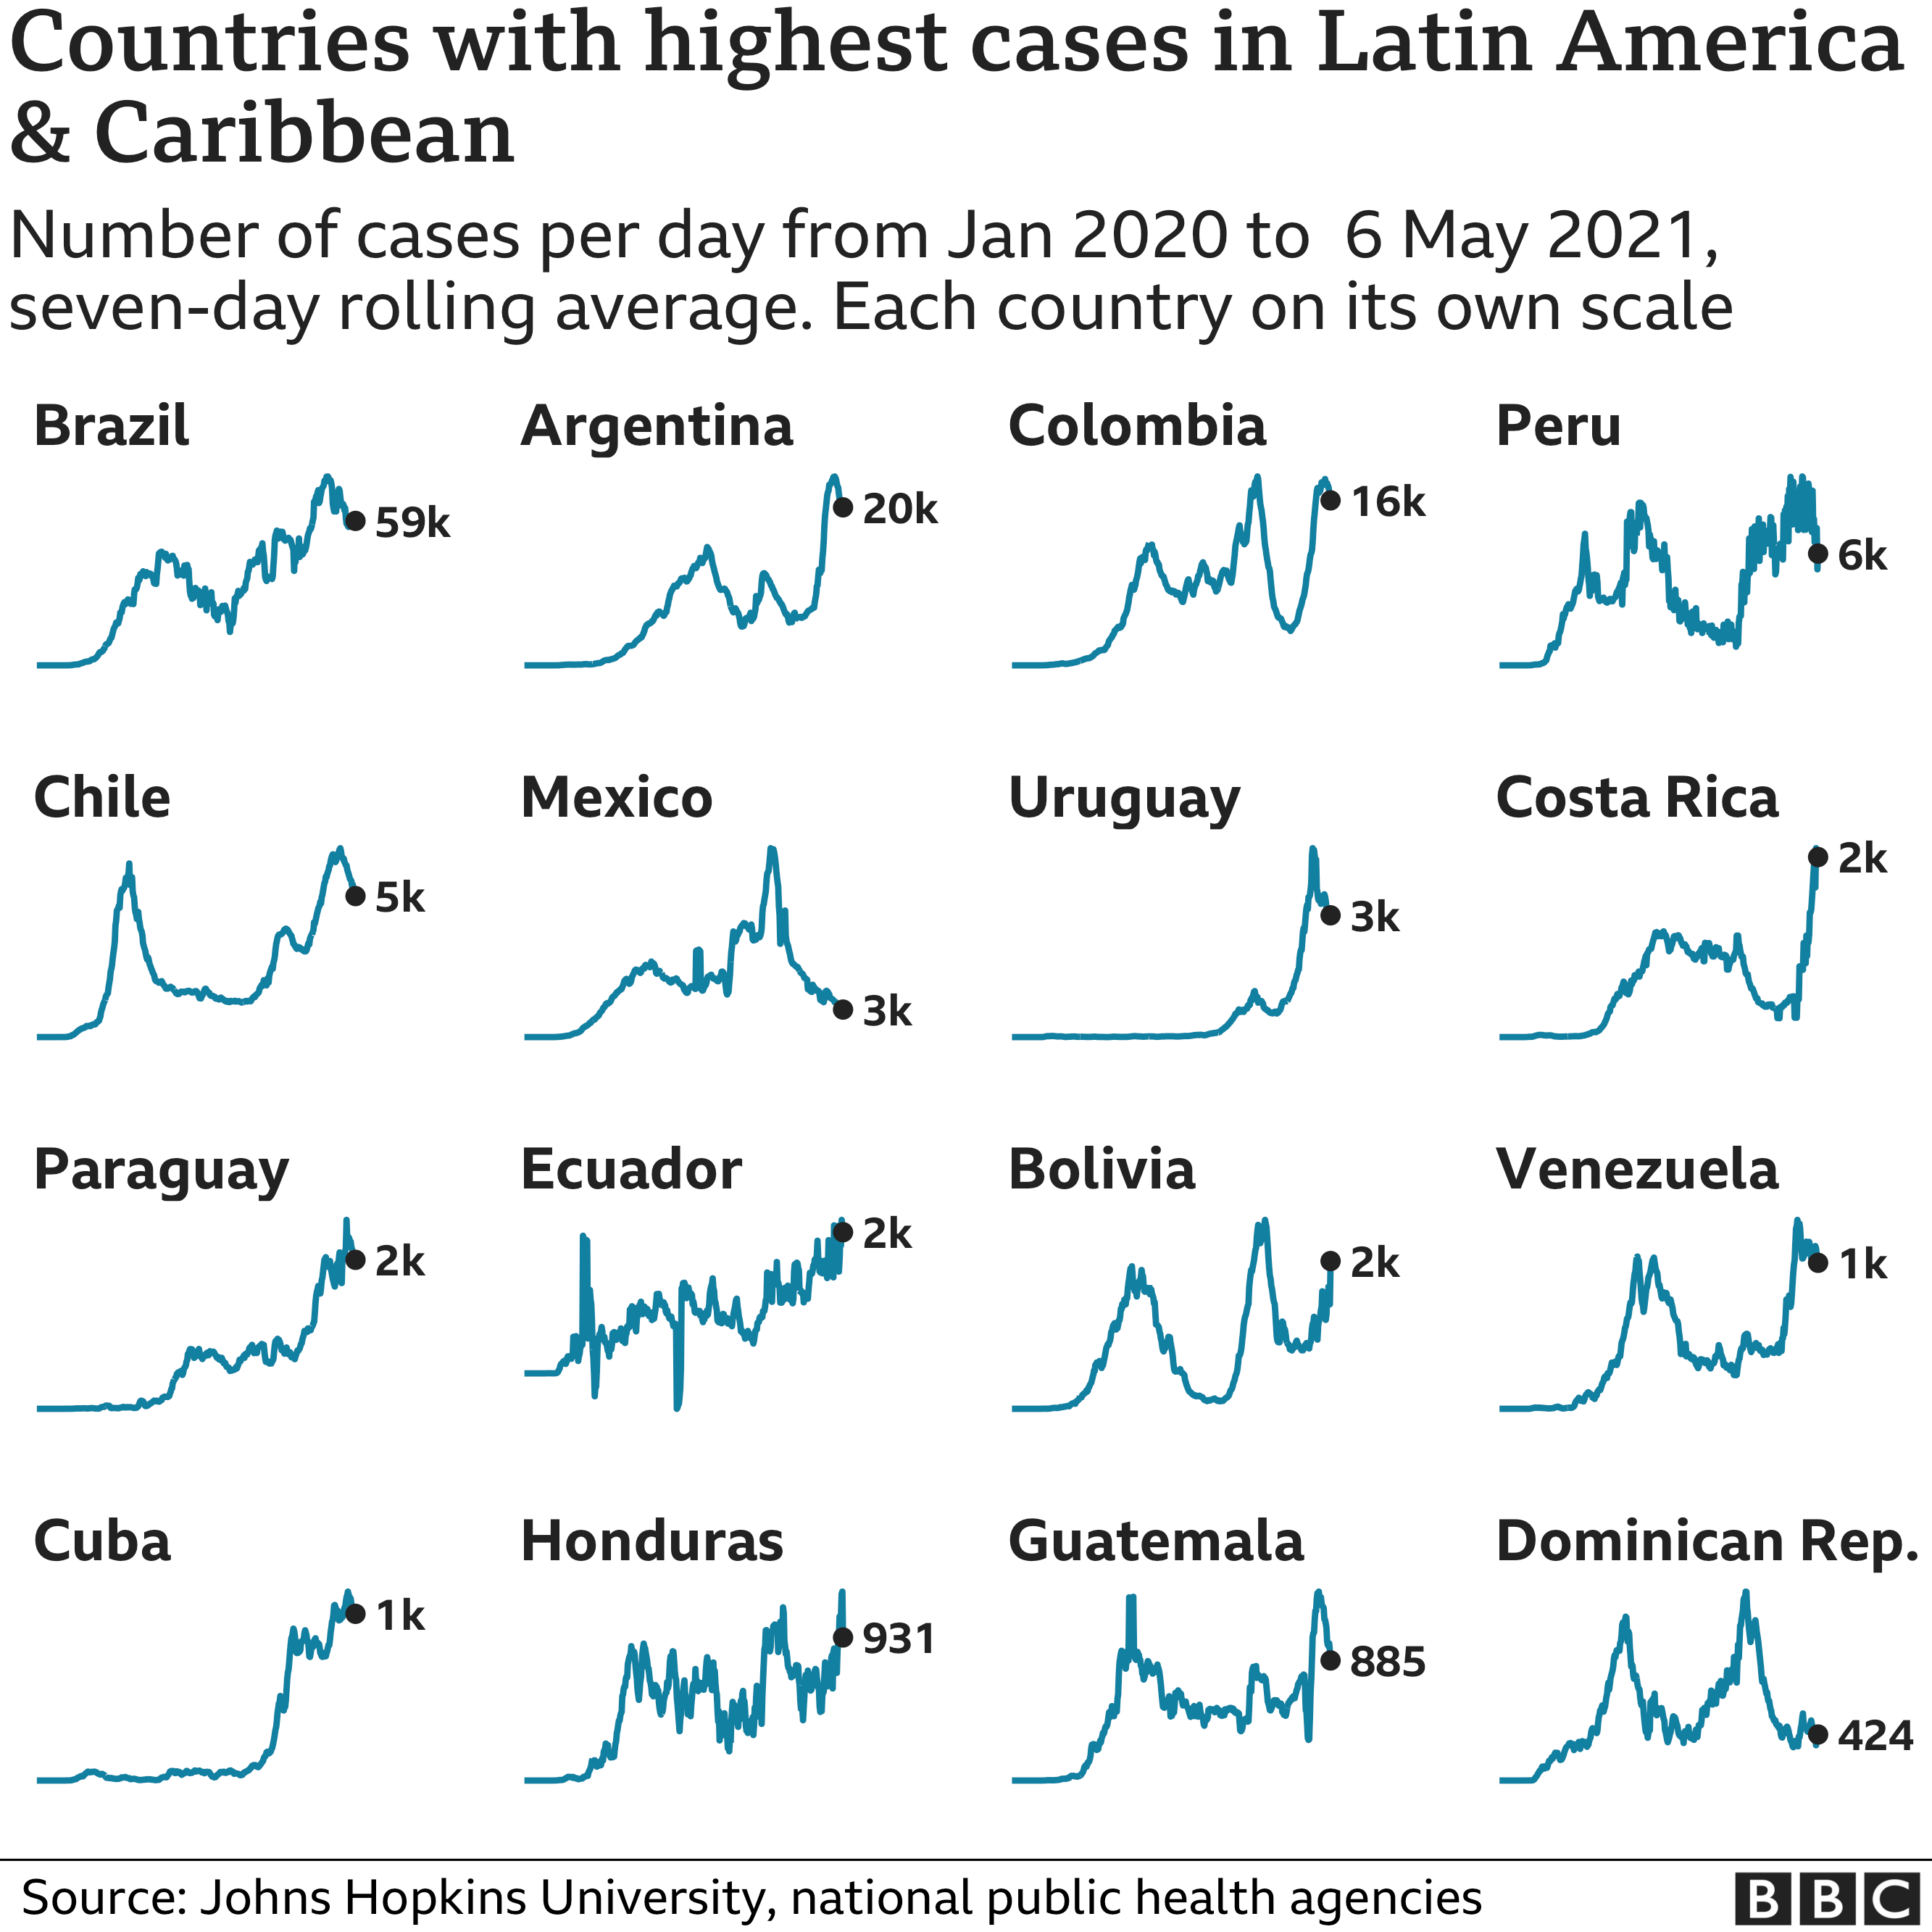 Chart showing the countries in Latin America and the Caribbean with the highest average number of cases in the last week